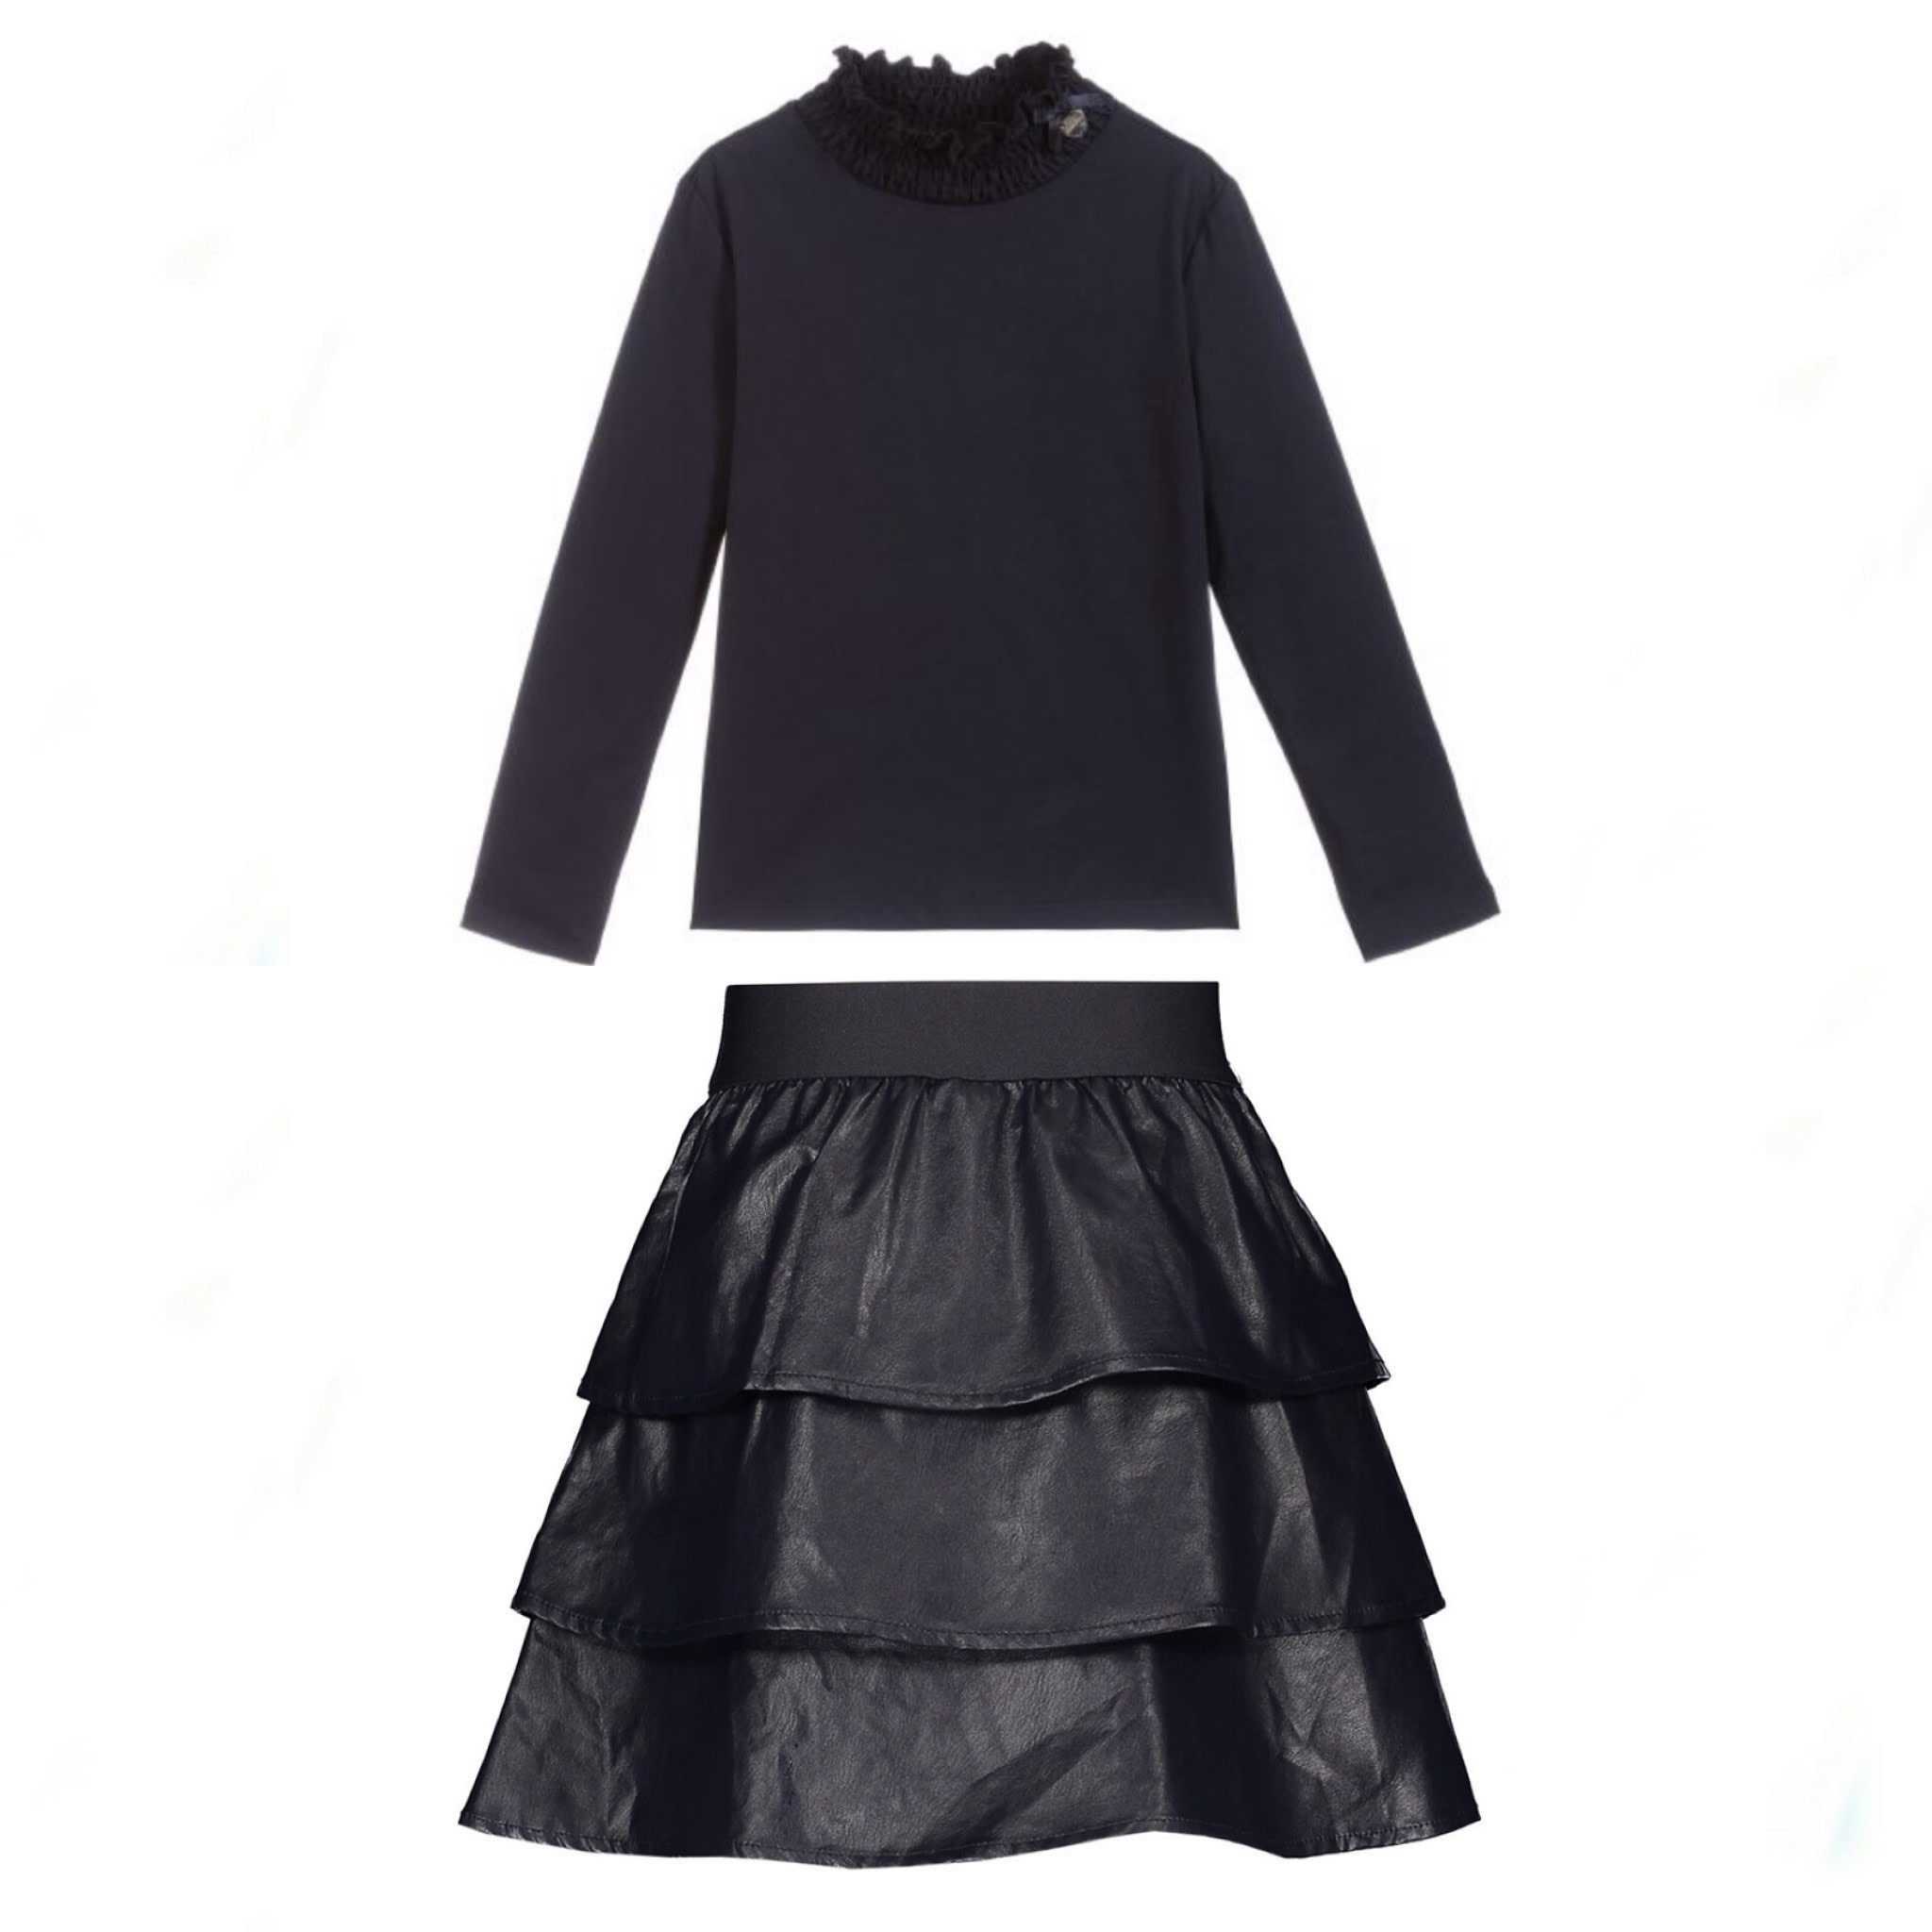 Lechic LeChic Navy Top & Faux Leather Ruffle Skirt